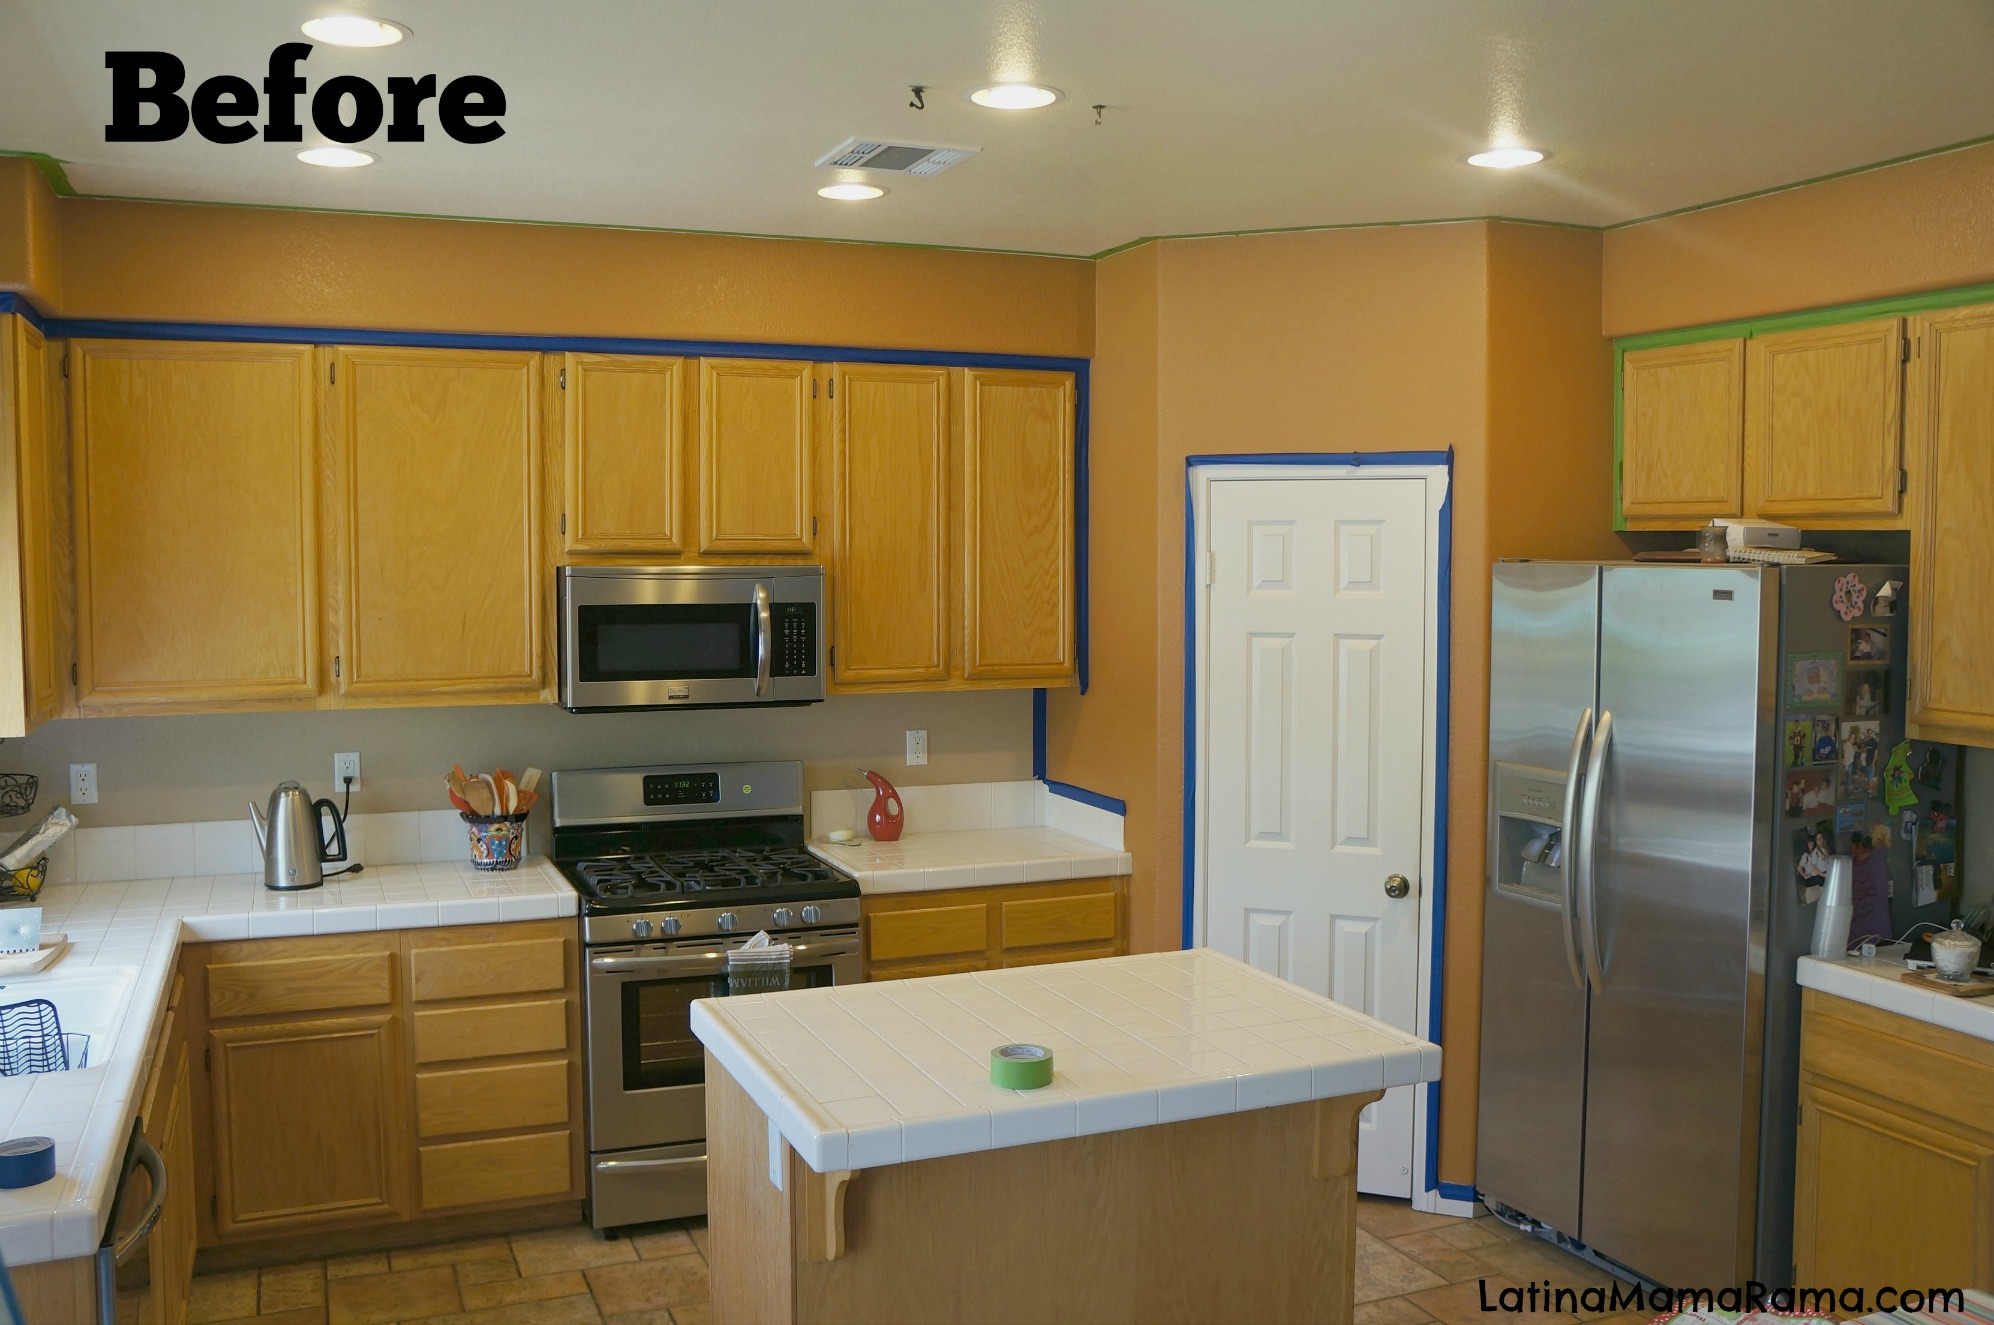 how to refinish your kitchen cabinets refinish kitchen cabinets How to refinish your kitchen cabinets